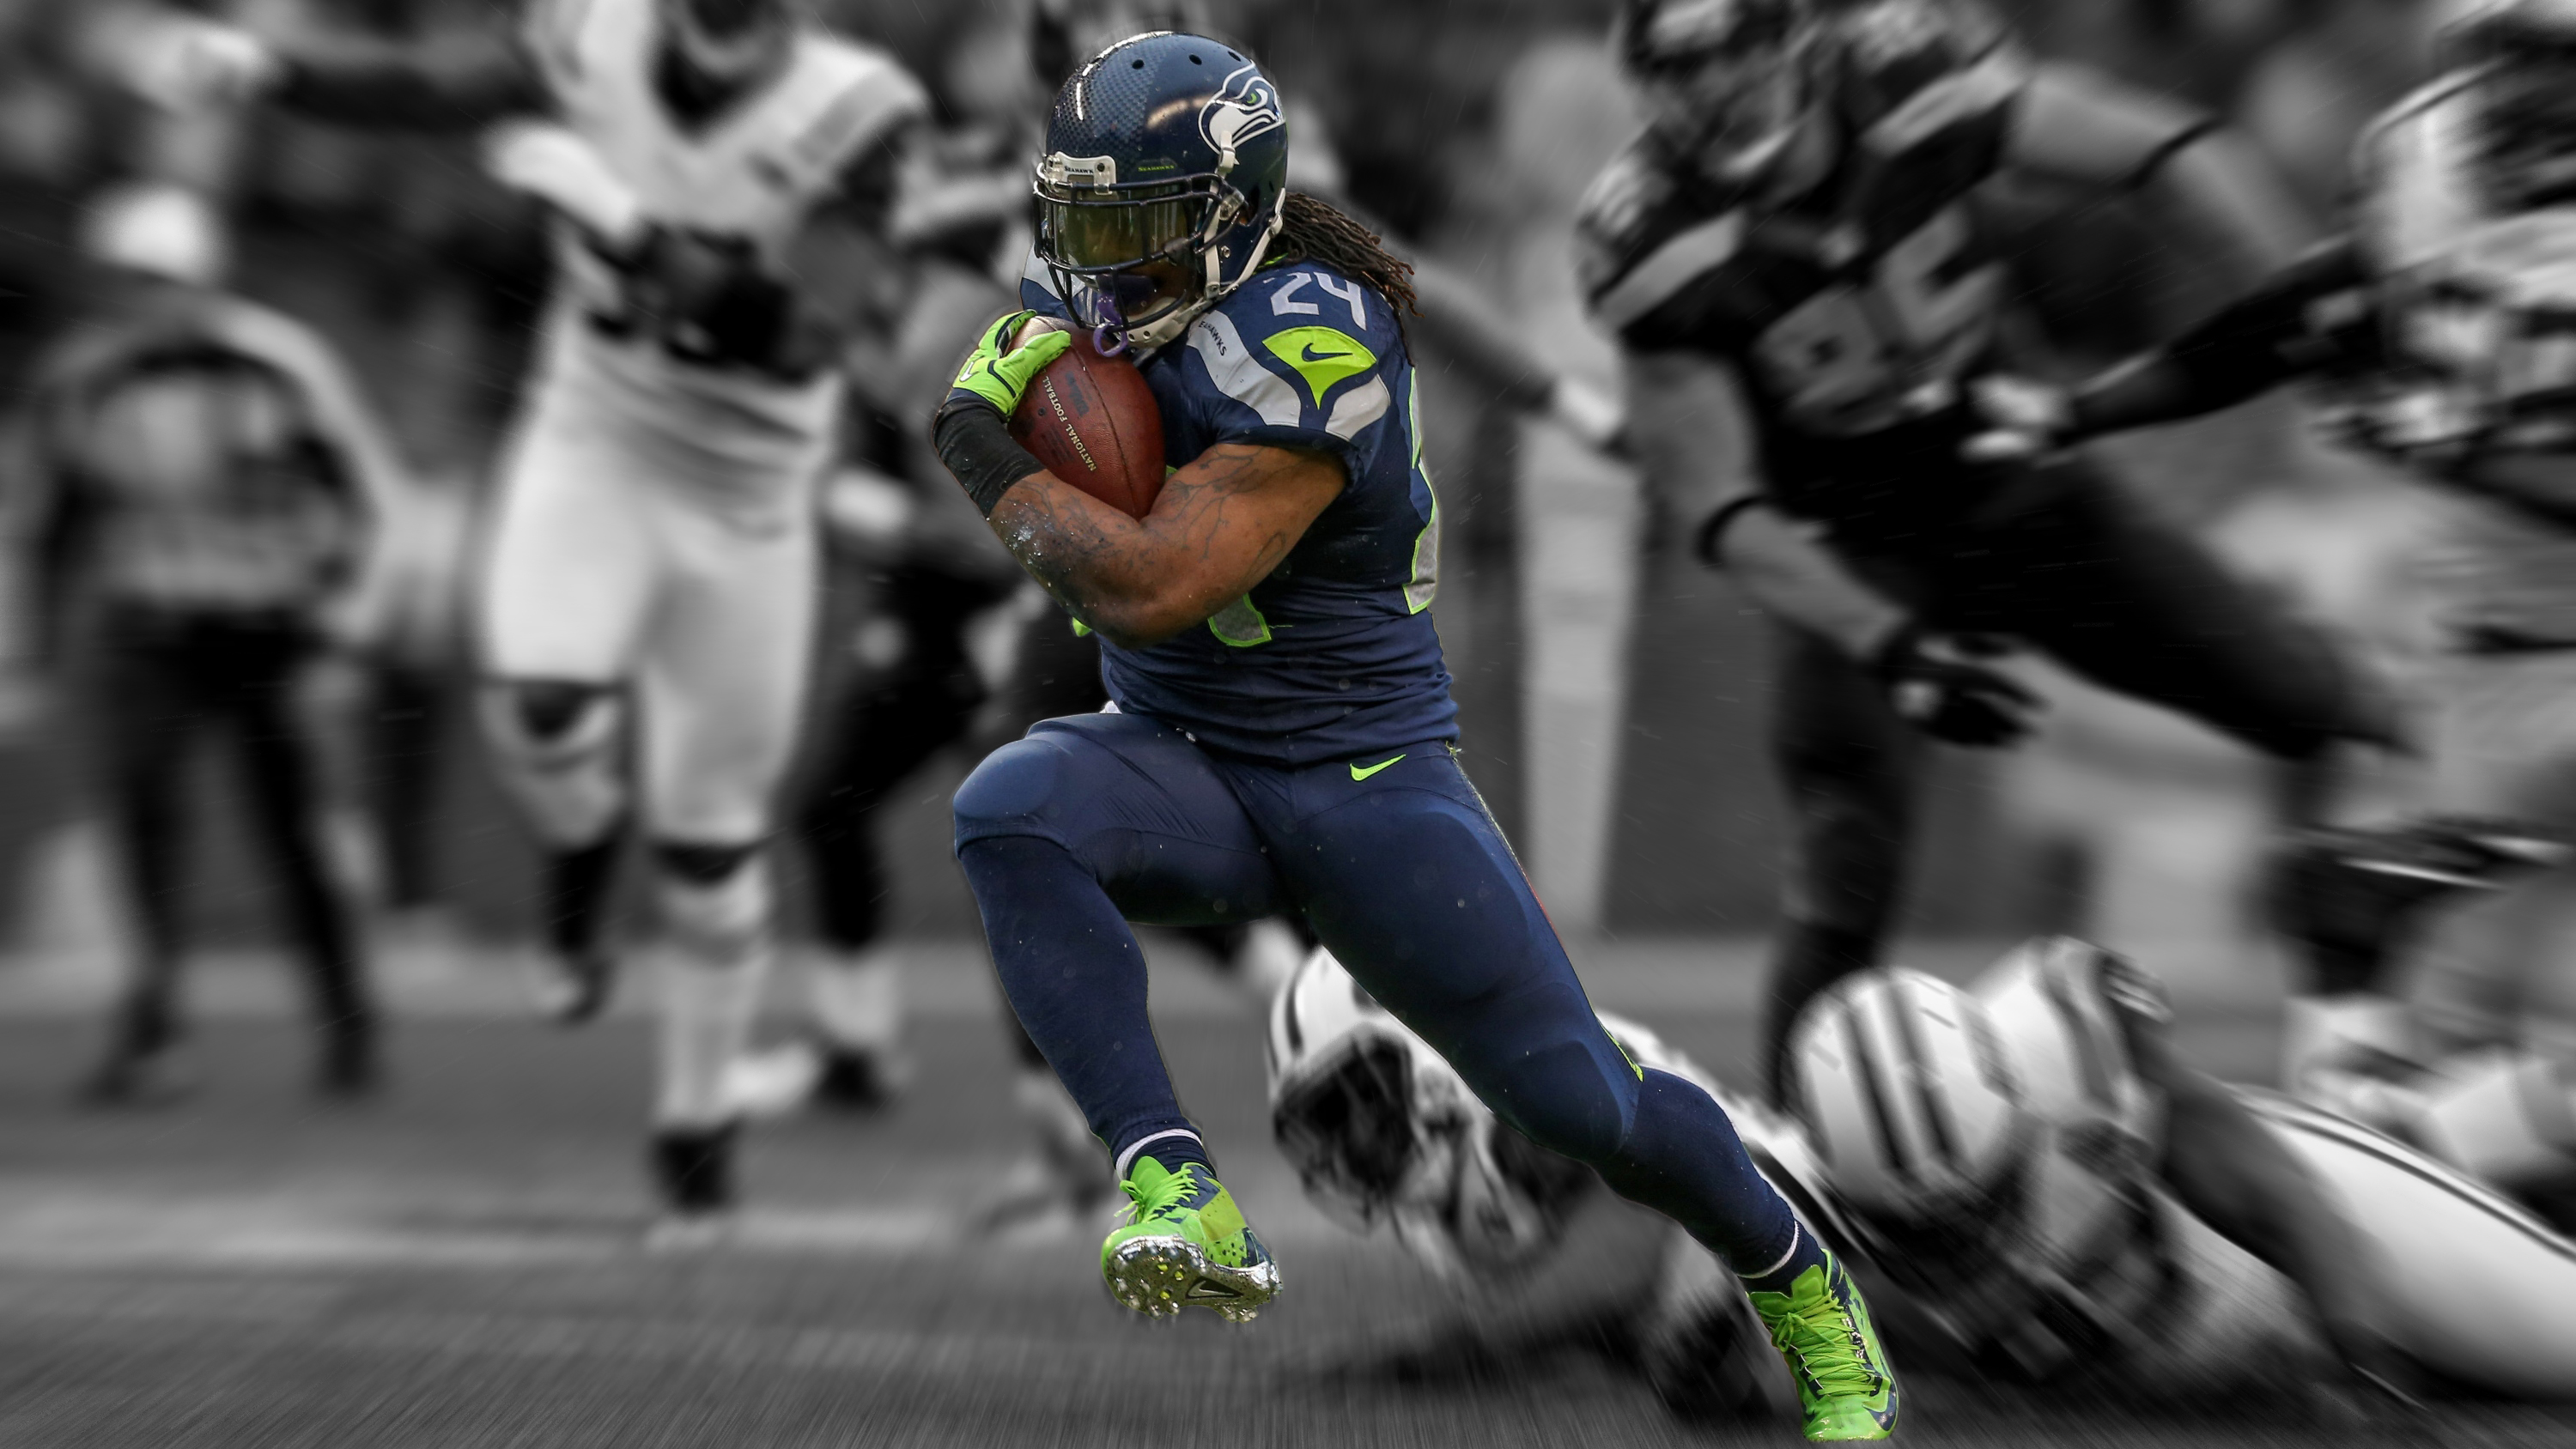 marshawn lynch seahawks 2013 wallpaper images pictures